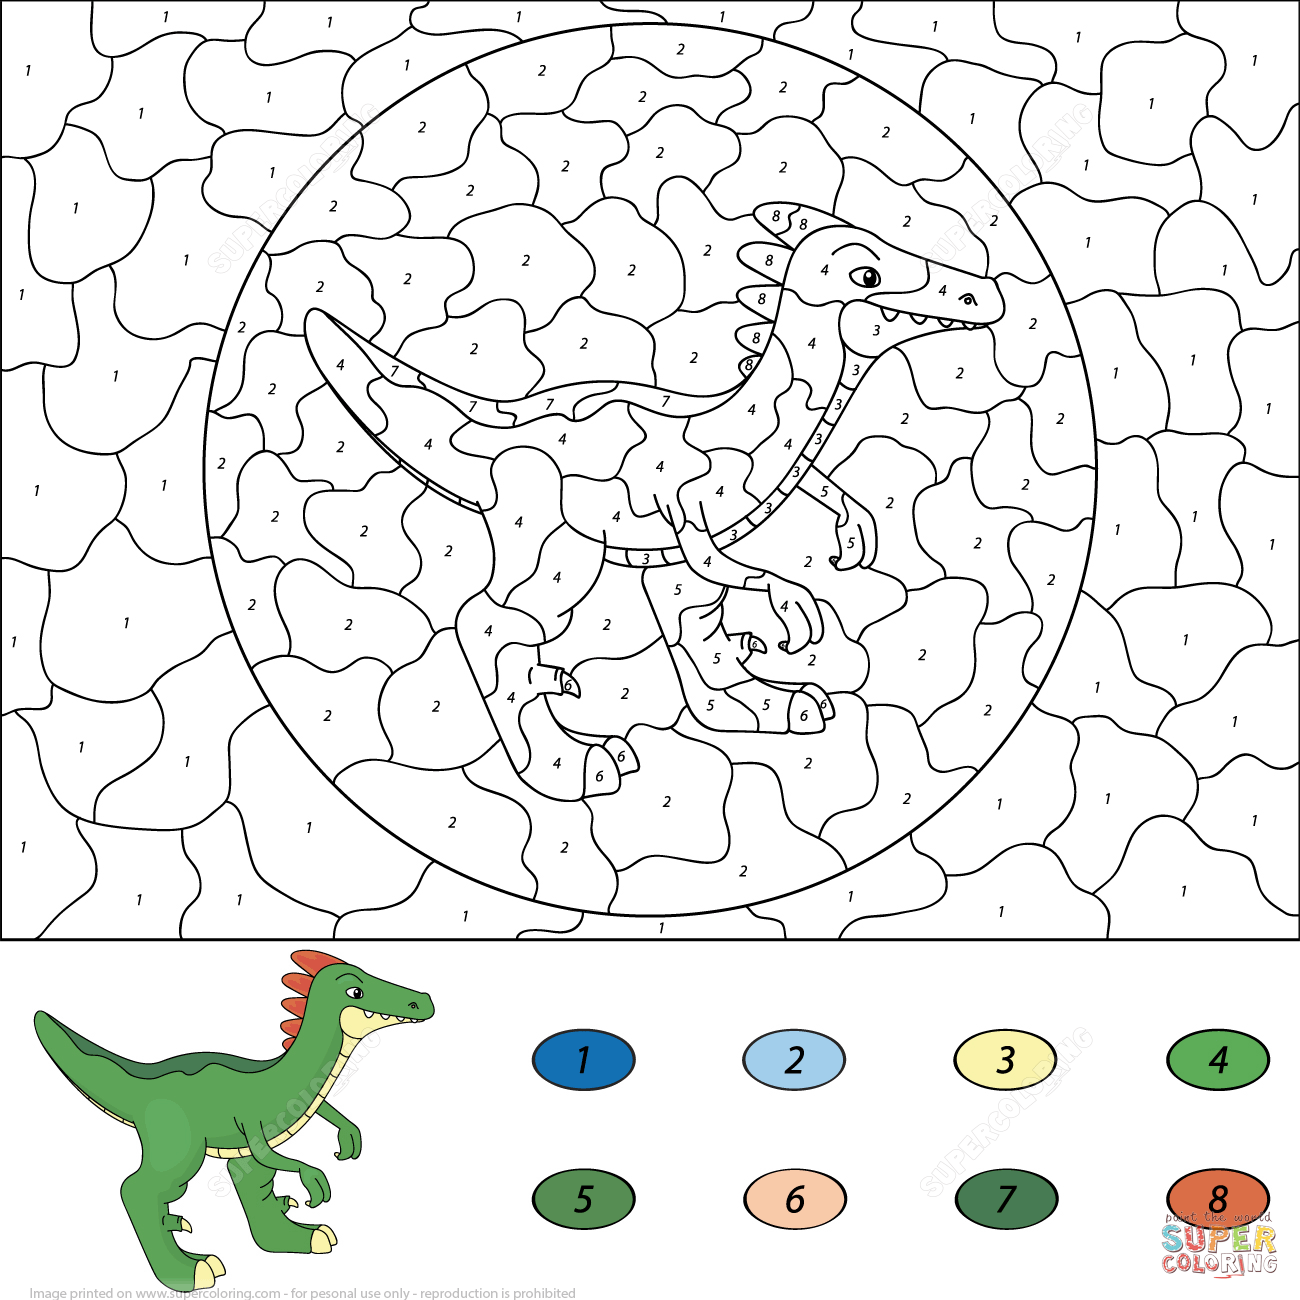 dinosaurs-color-number-coloring-pages-printable-pictures-guanlong ...